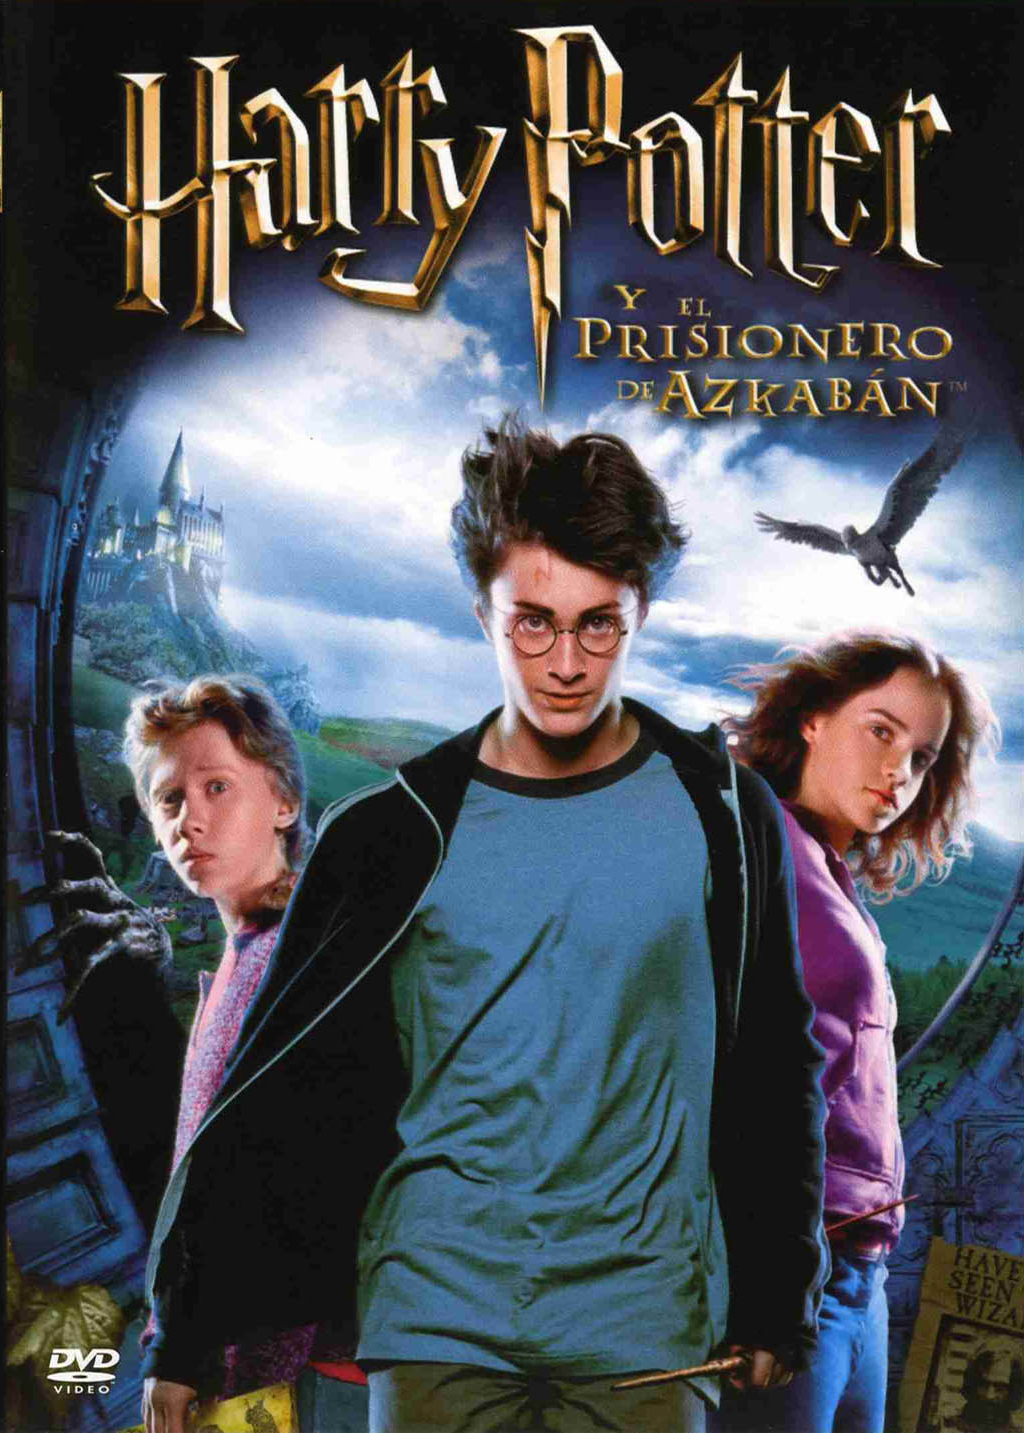 Harry Potter Libros Pdf Libros Fantasticos Saga Harry Potter J K Rowling